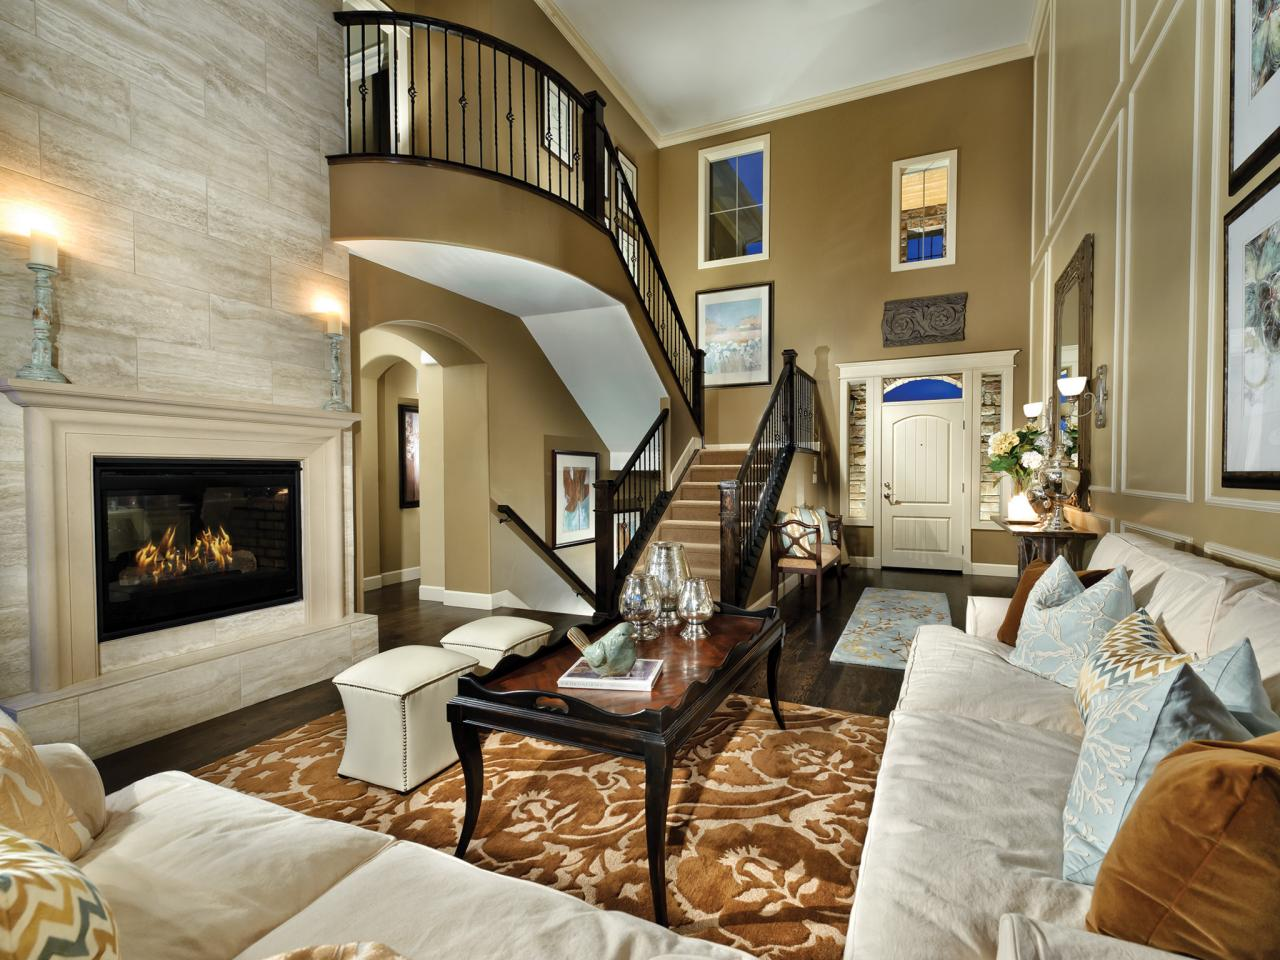 Transitional Living Room With Stairs And Marble Fireplace